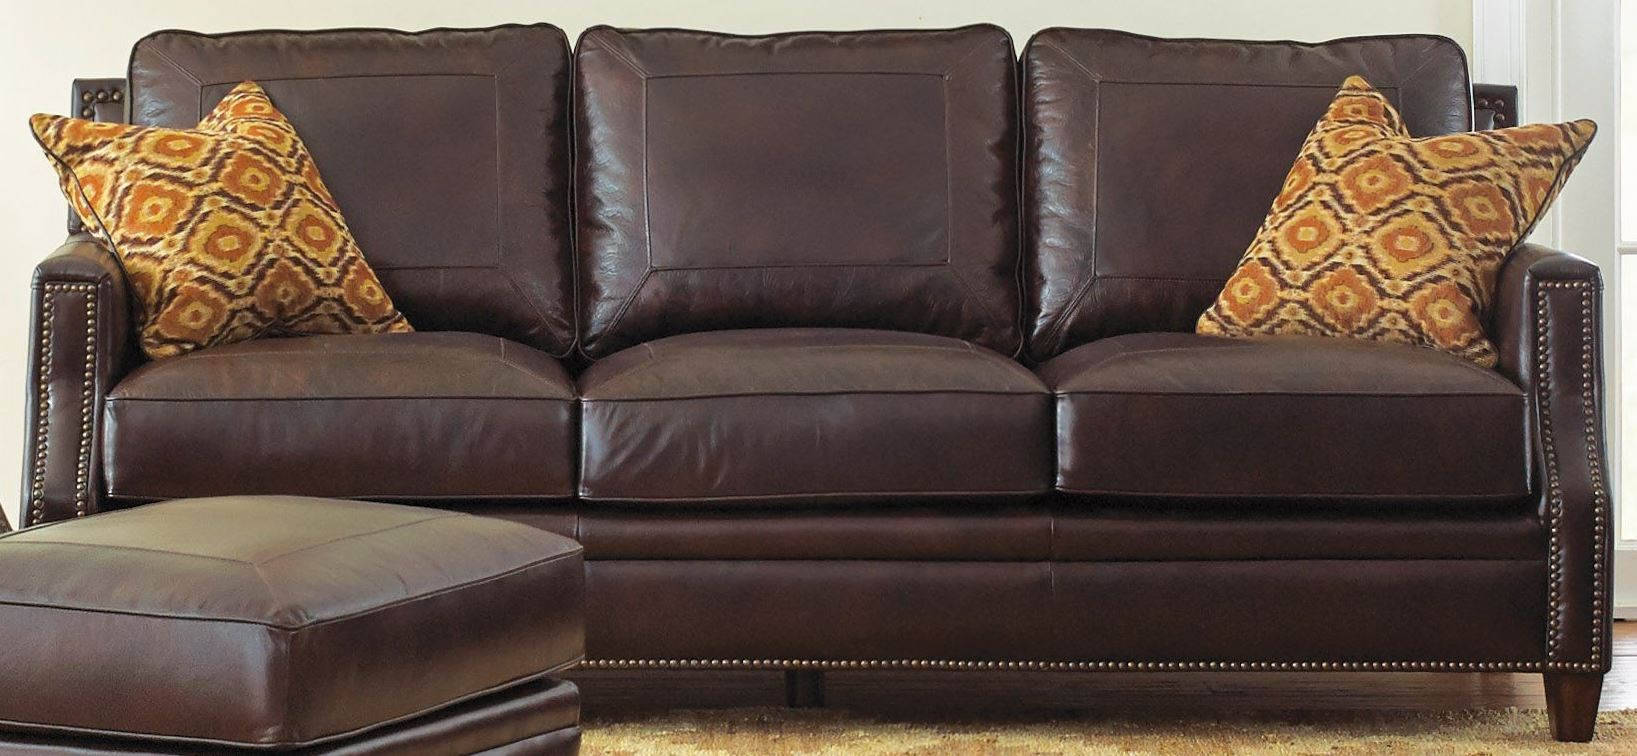 Caldwell Leather Sofa With 2 Accent Pillows From Steve